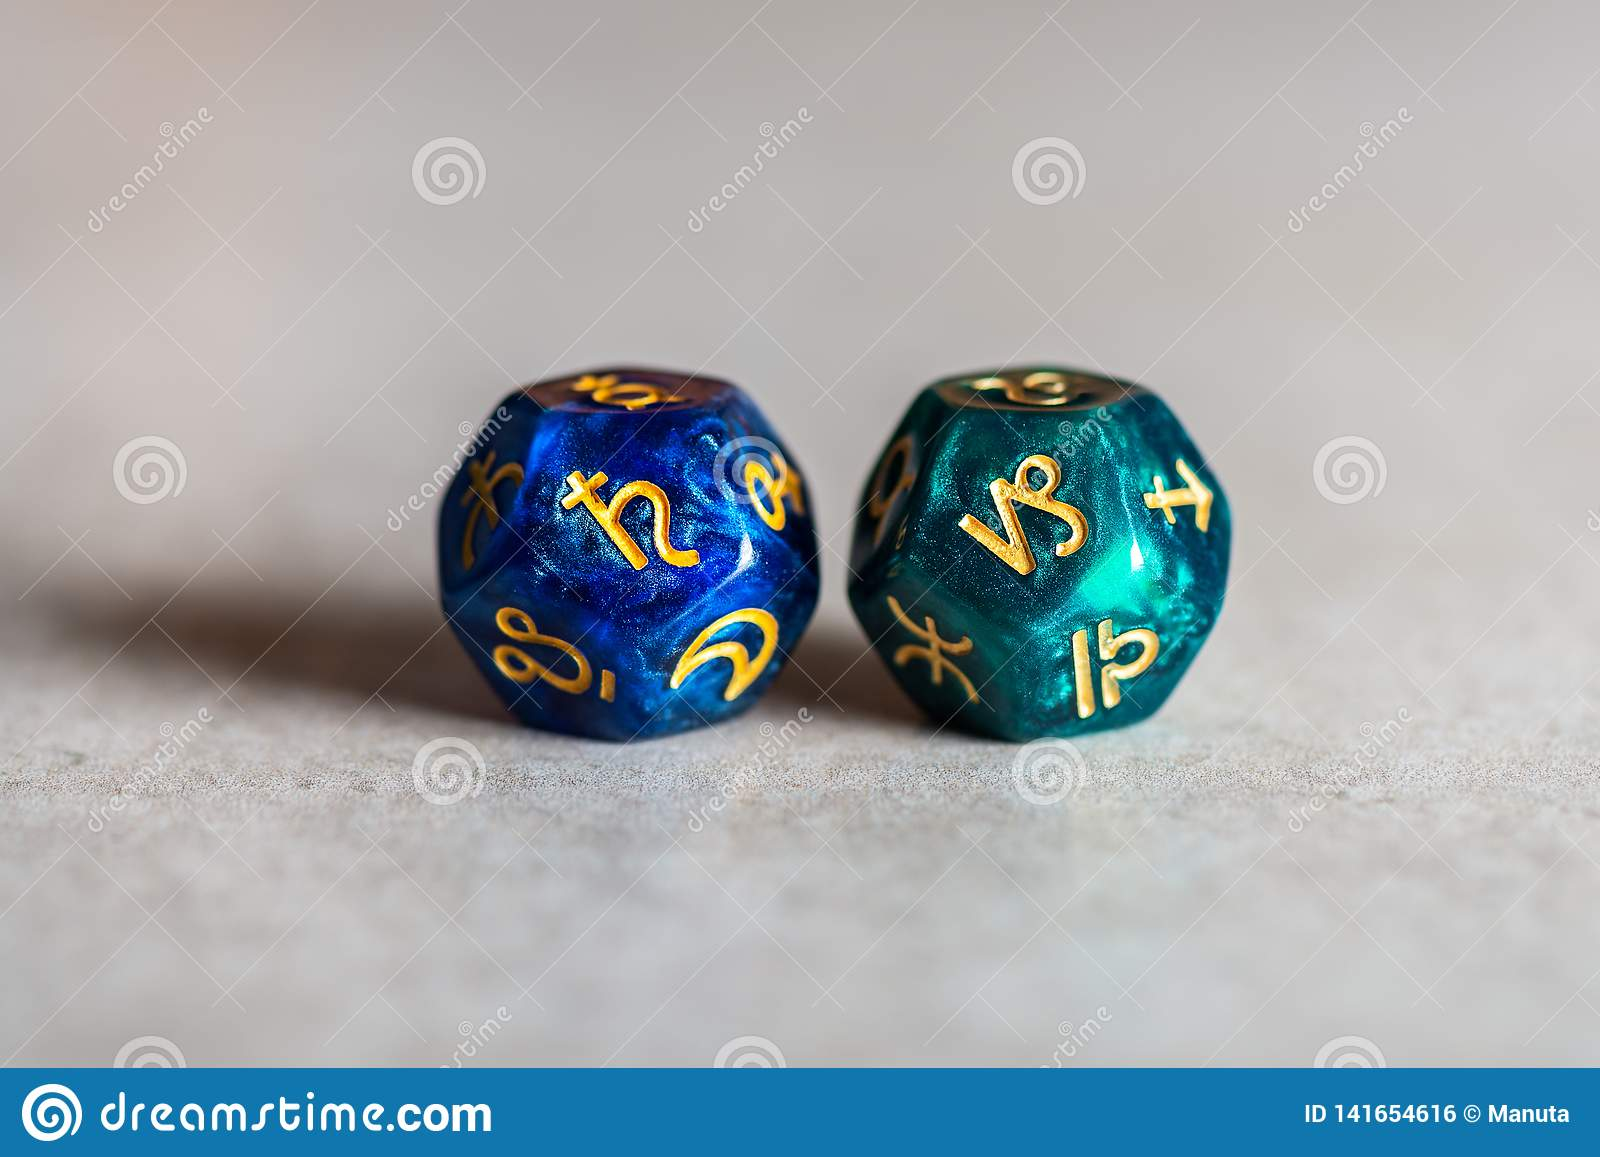 Astrology Dice with zodiac symbol of Capricorn and its ruling planet Saturn